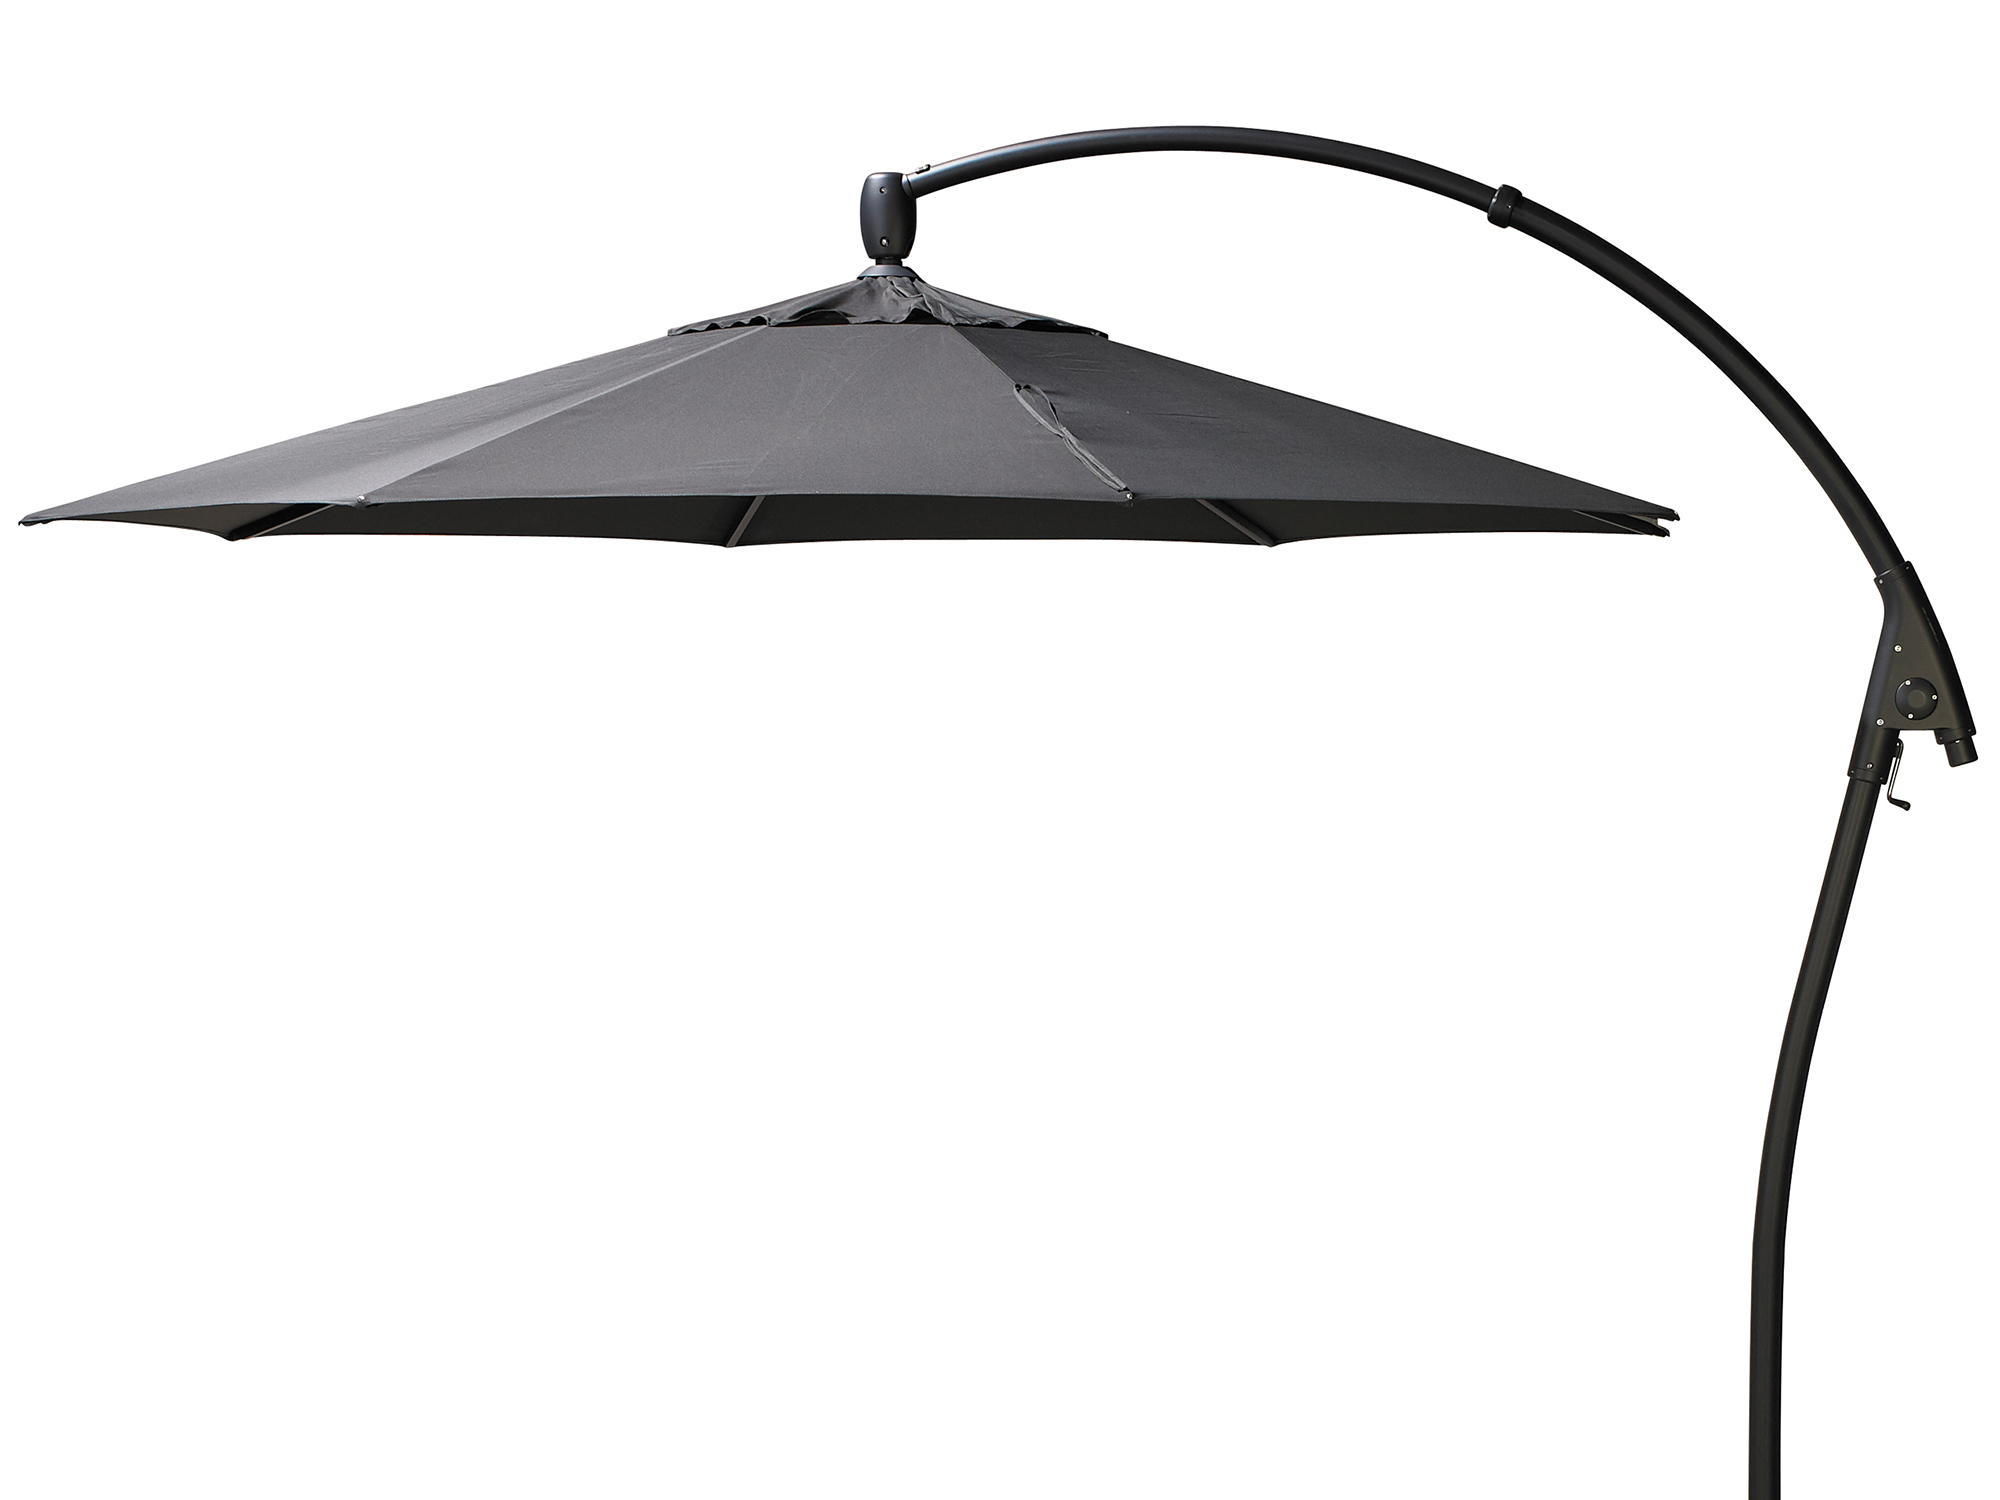 bellgio ampelschirm manhattan 350cm iron grey